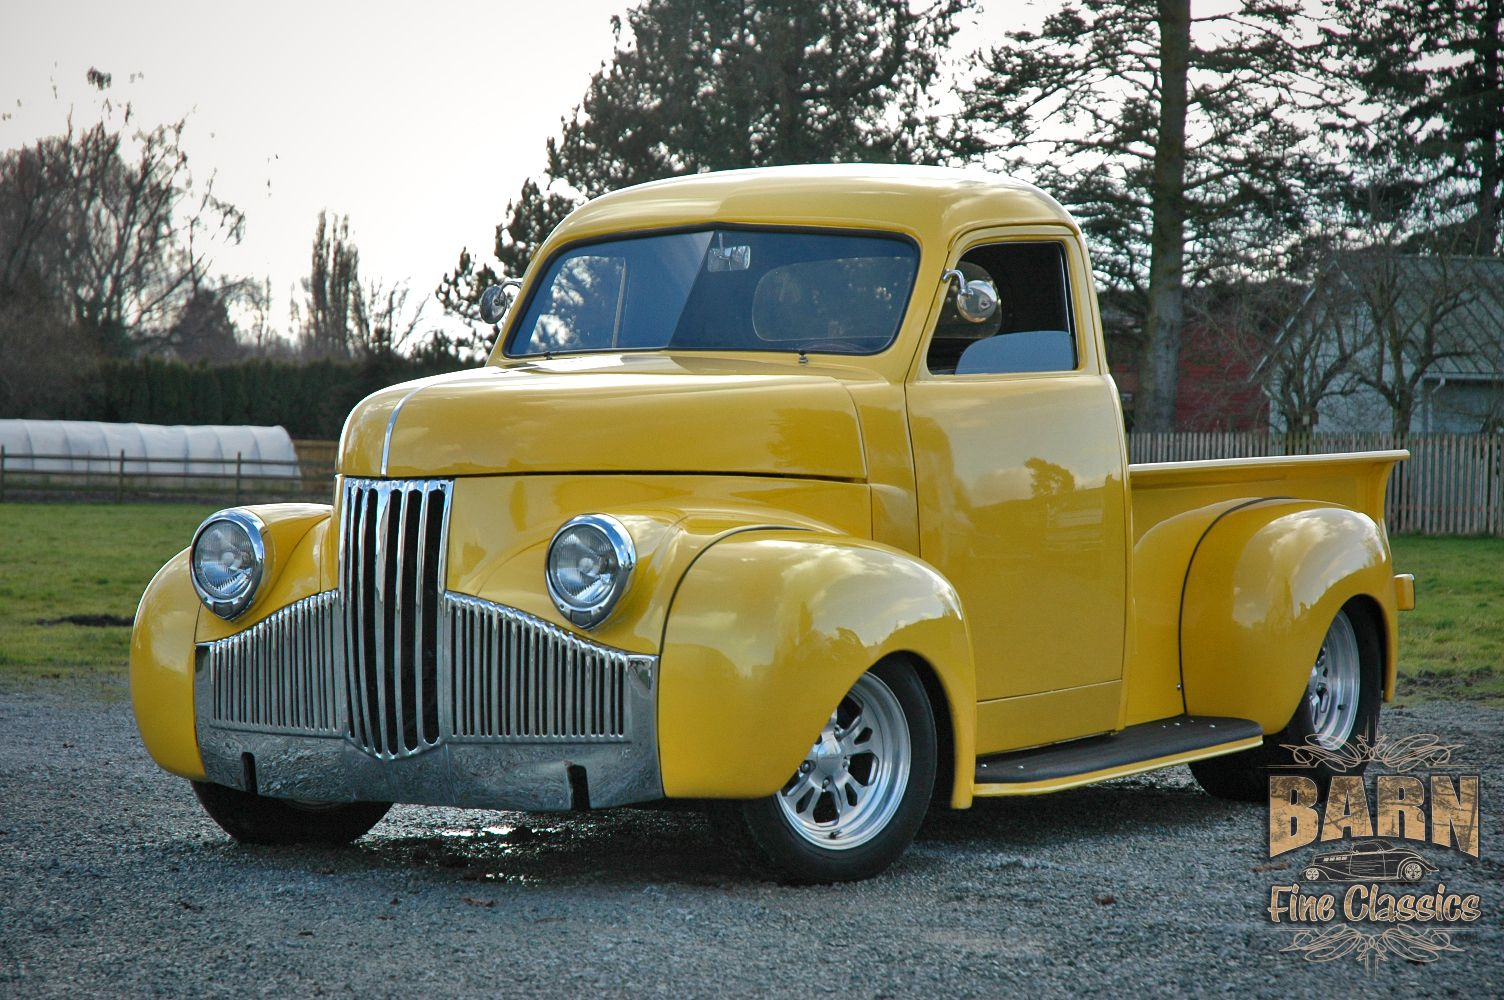 1947 Studebaker Pickup Yellow, for sale in United States, $26,950 ...